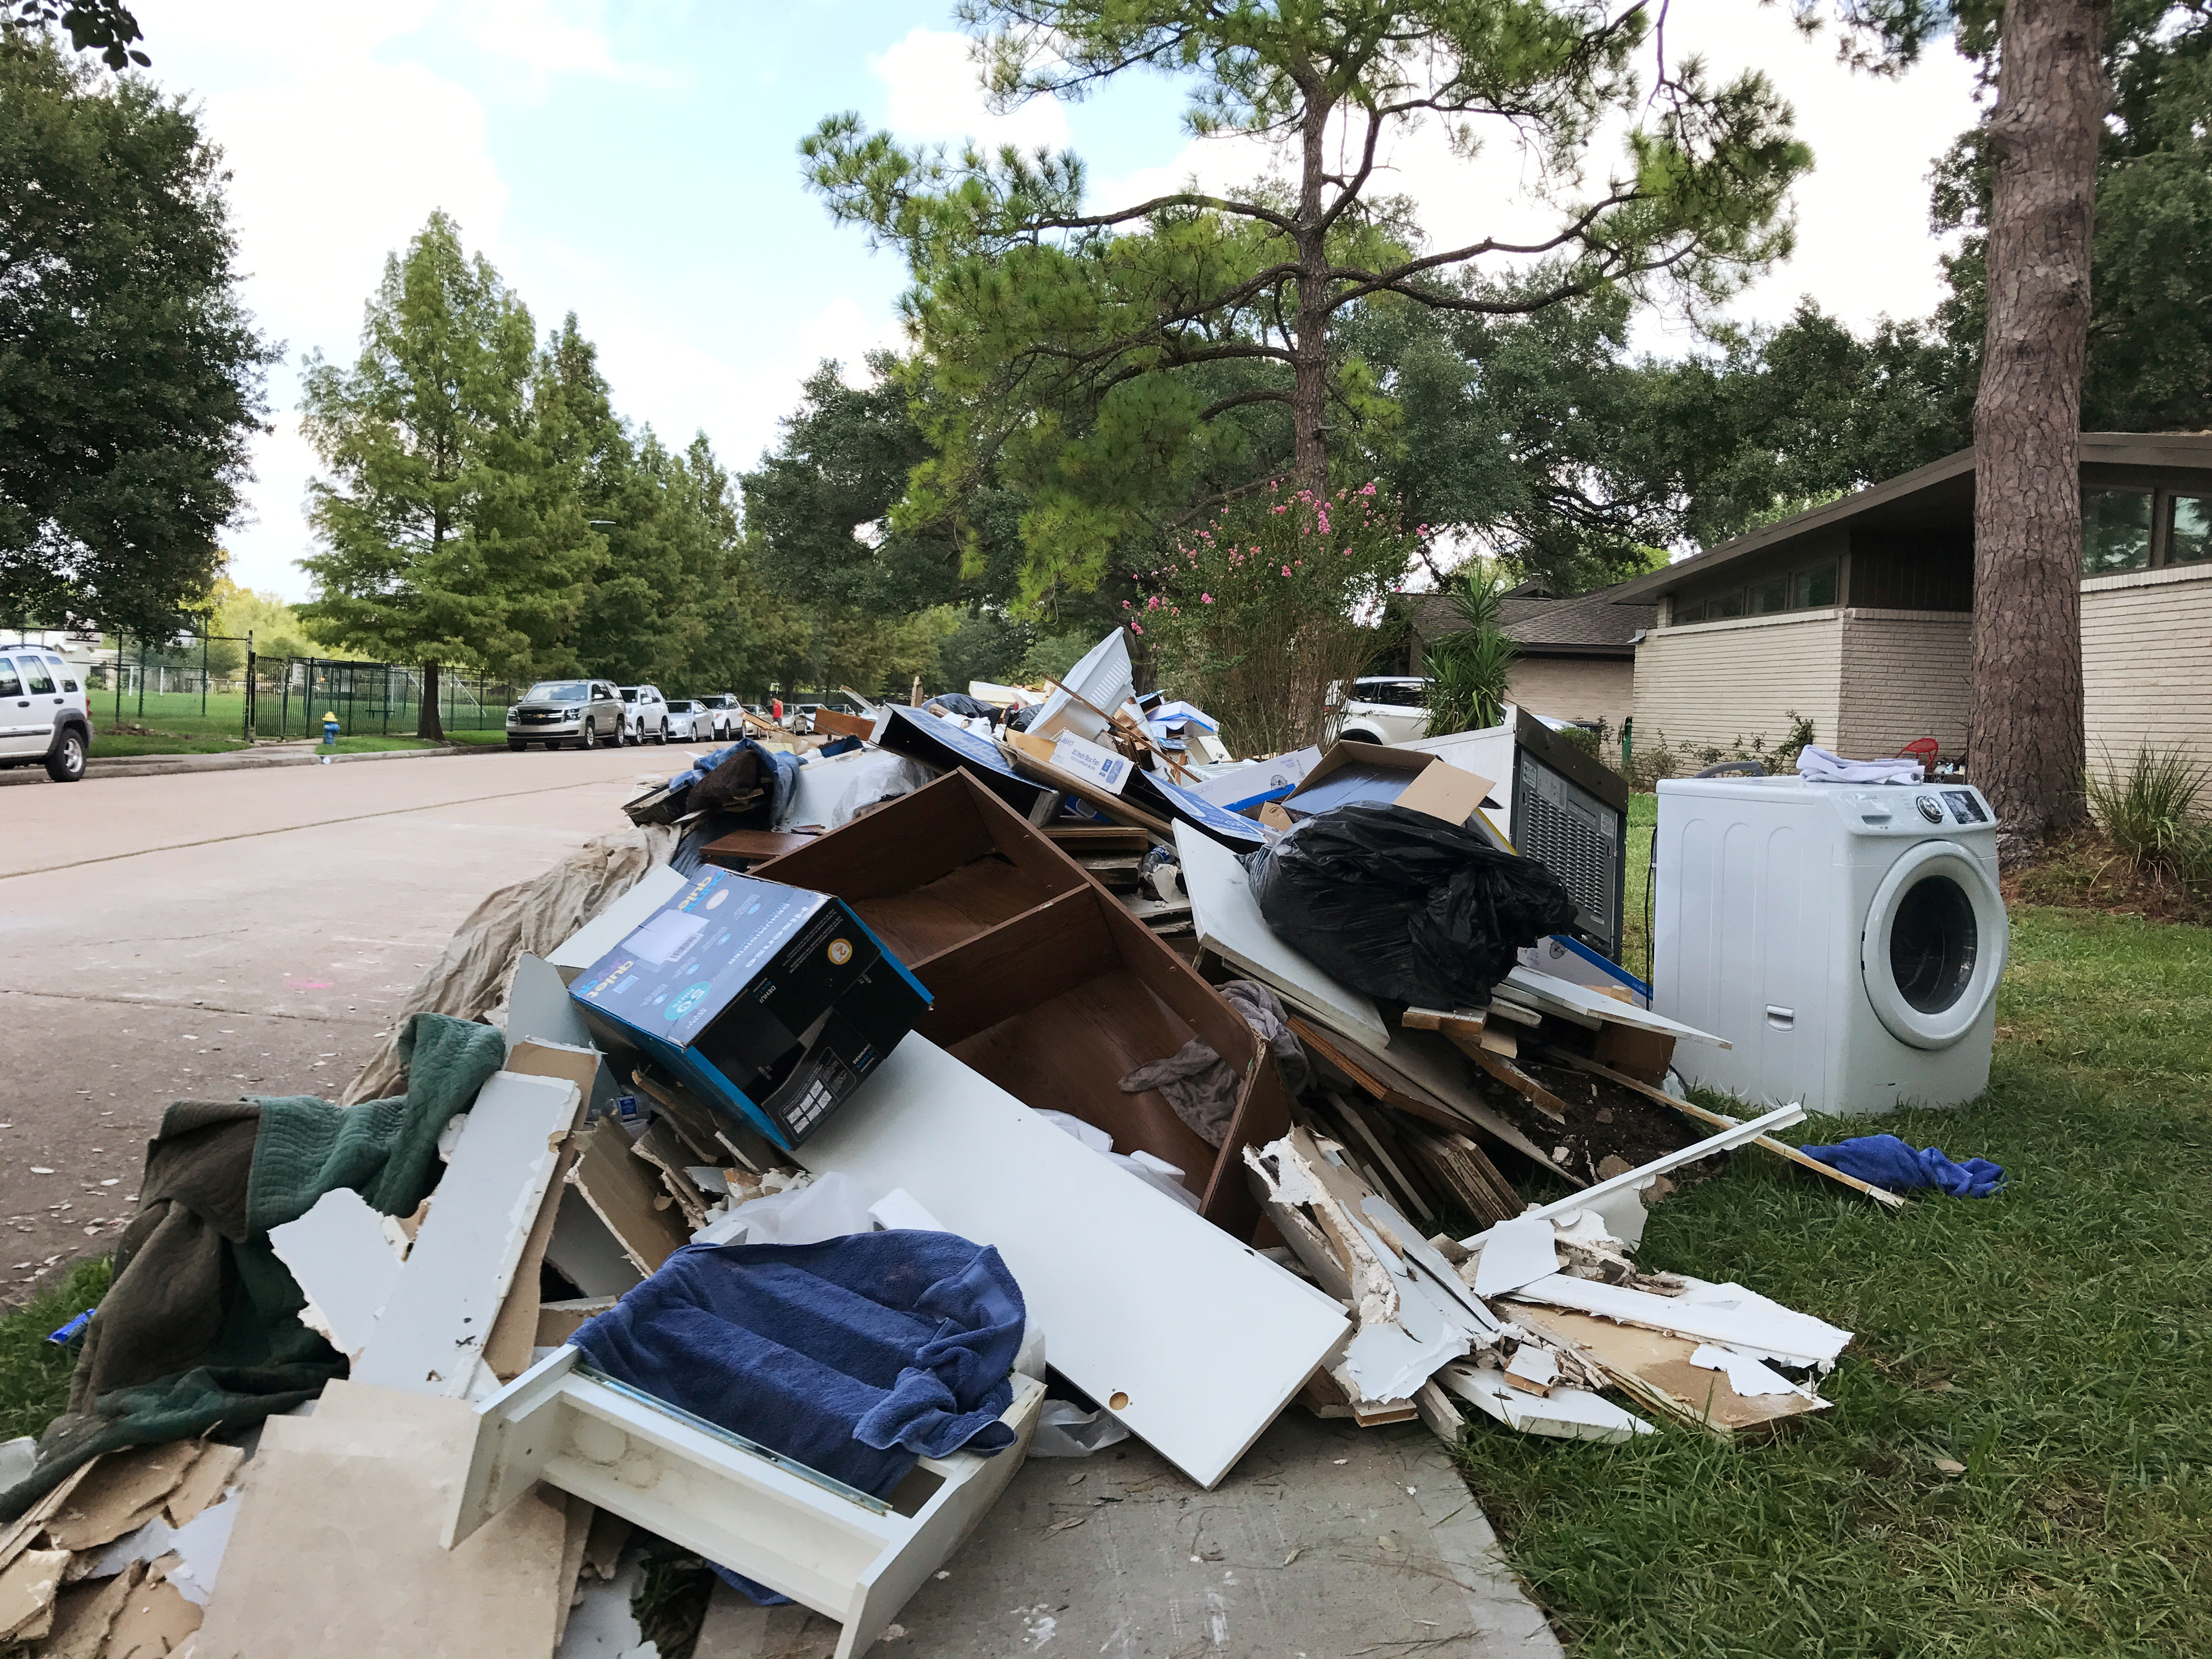 Rotting drywall and other material ripped out of homes damaged by Tropical Storm Harvey sits on the edge of a residential street in Houston's Meyerland neighborhood in Houston, Texas, U.S., September 4, 2017. REUTERS/Ernest ScheyderRotting drywall and other material ripped out of homes damaged by Tropical Storm Harvey sits on the edge of a residential street in Houston's Meyerland neighborhood in Houston, Texas, U.S., September 4, 2017. REUTERS/Ernest Scheyder